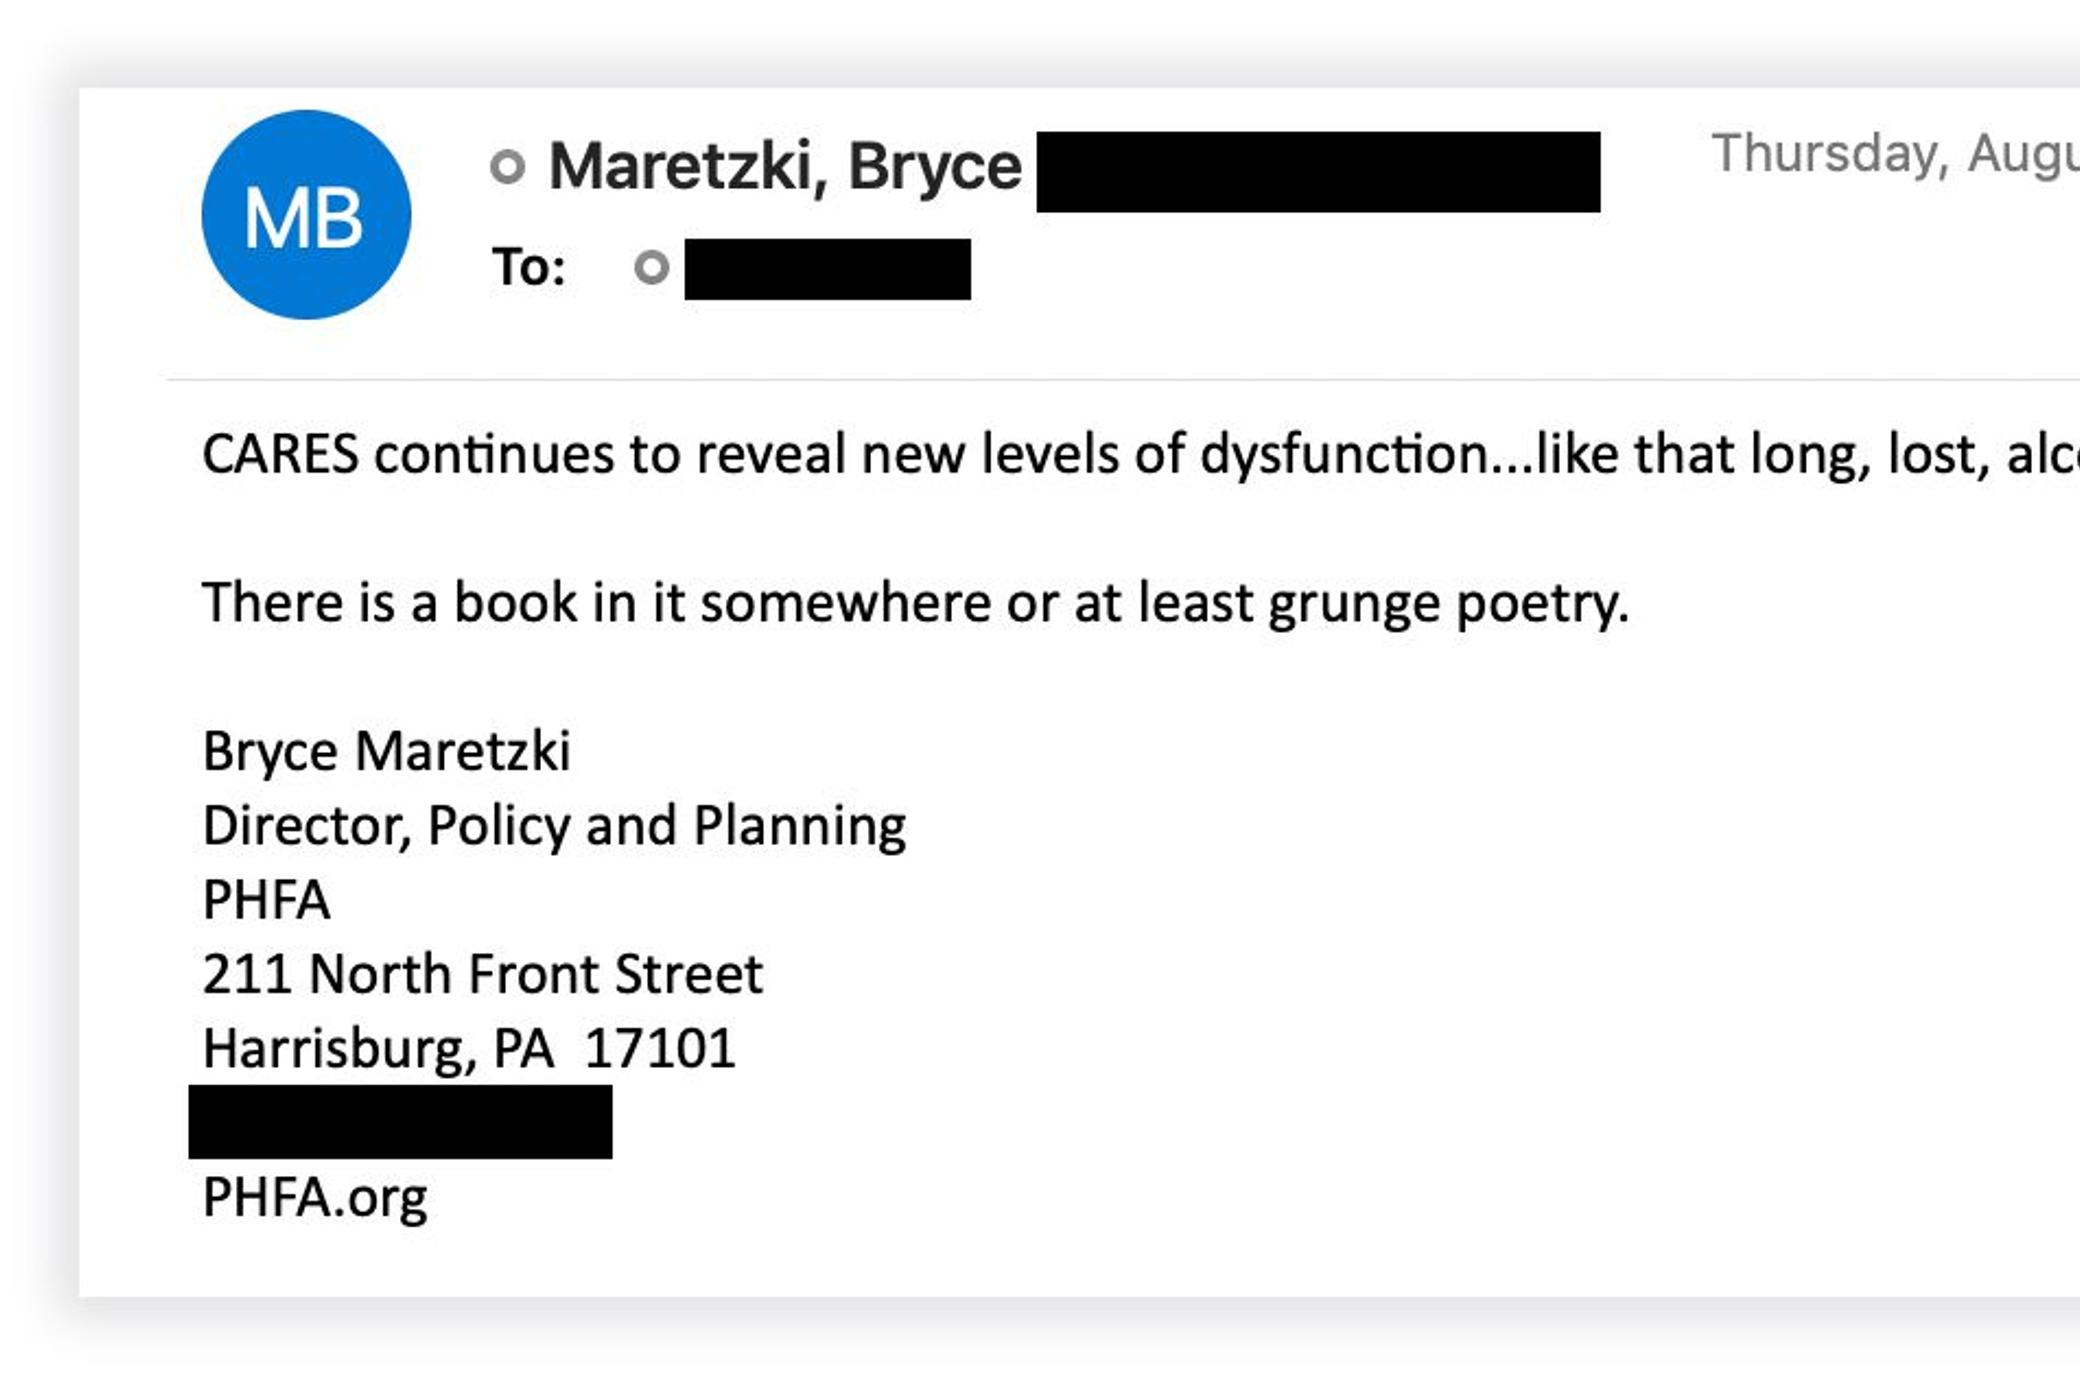 In an email, Bryce Maretzki, a senior official at the Pennsylvania Housing Finance Agency, complained about the problems of the state's CARES-funded rental assistance program